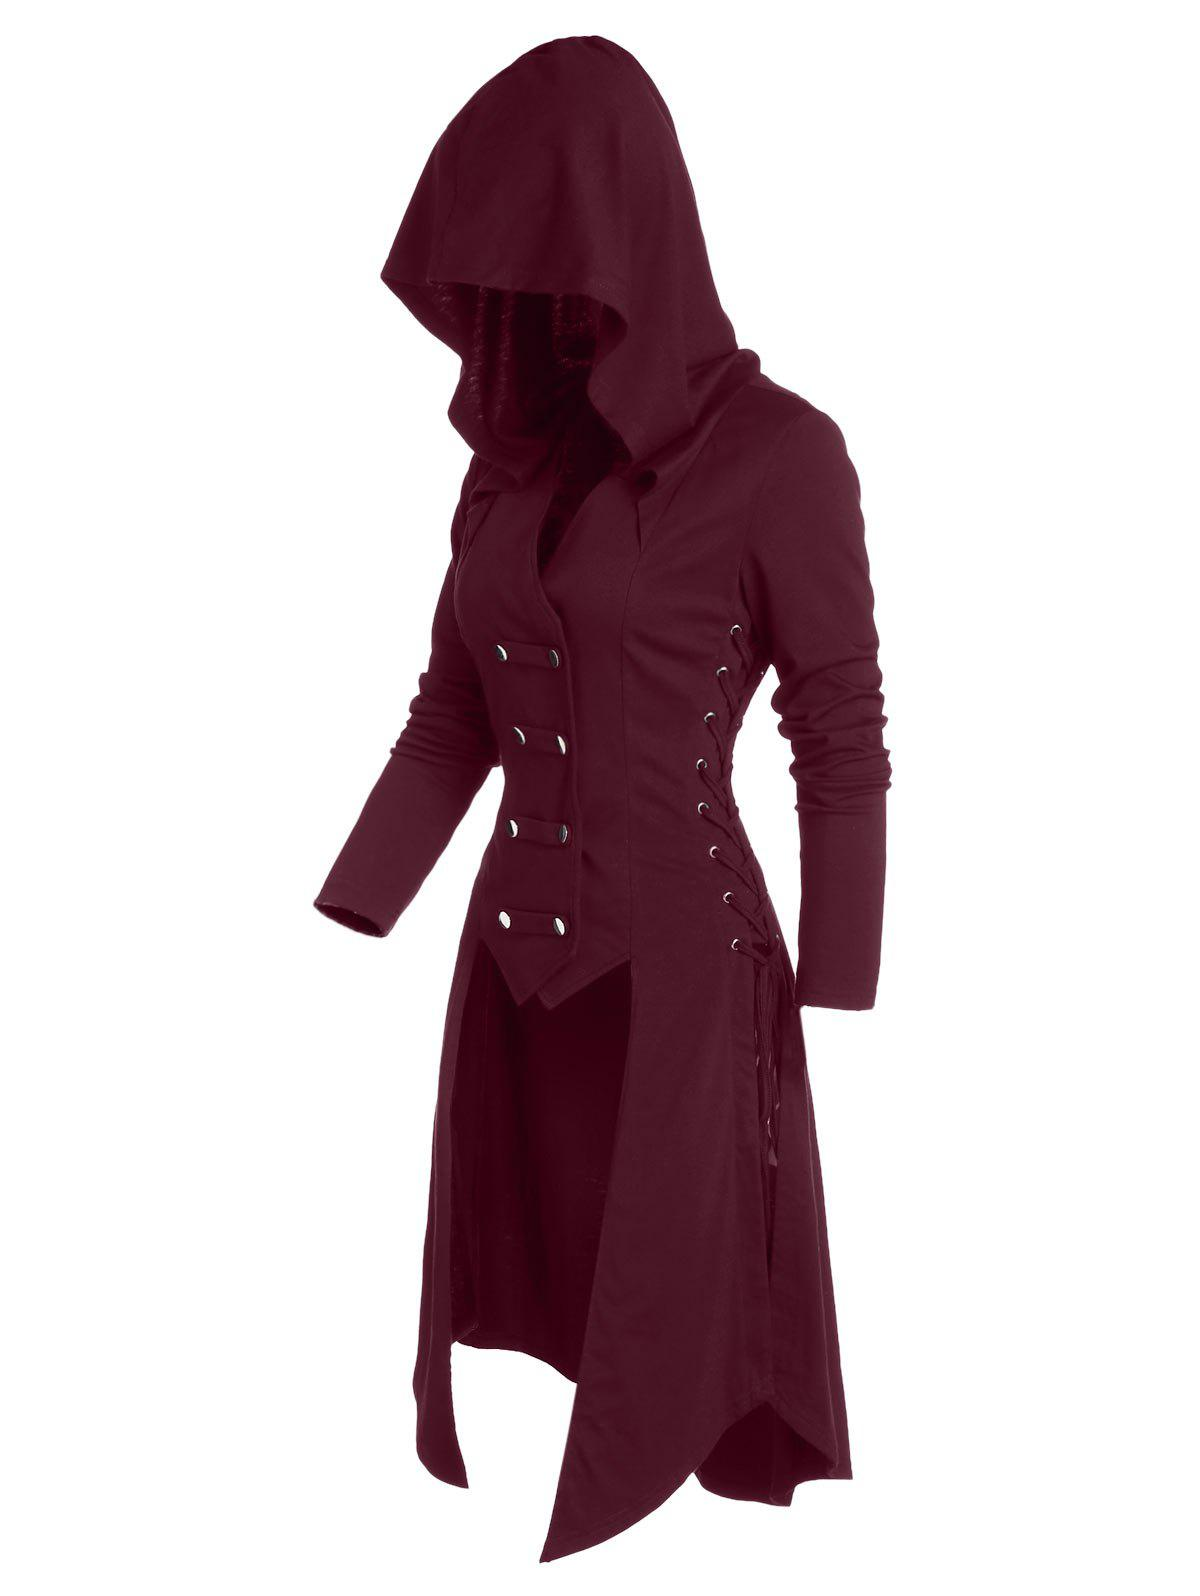 Hooded Lace-up Button Up High Low Steampunk Coat - FIREBRICK M